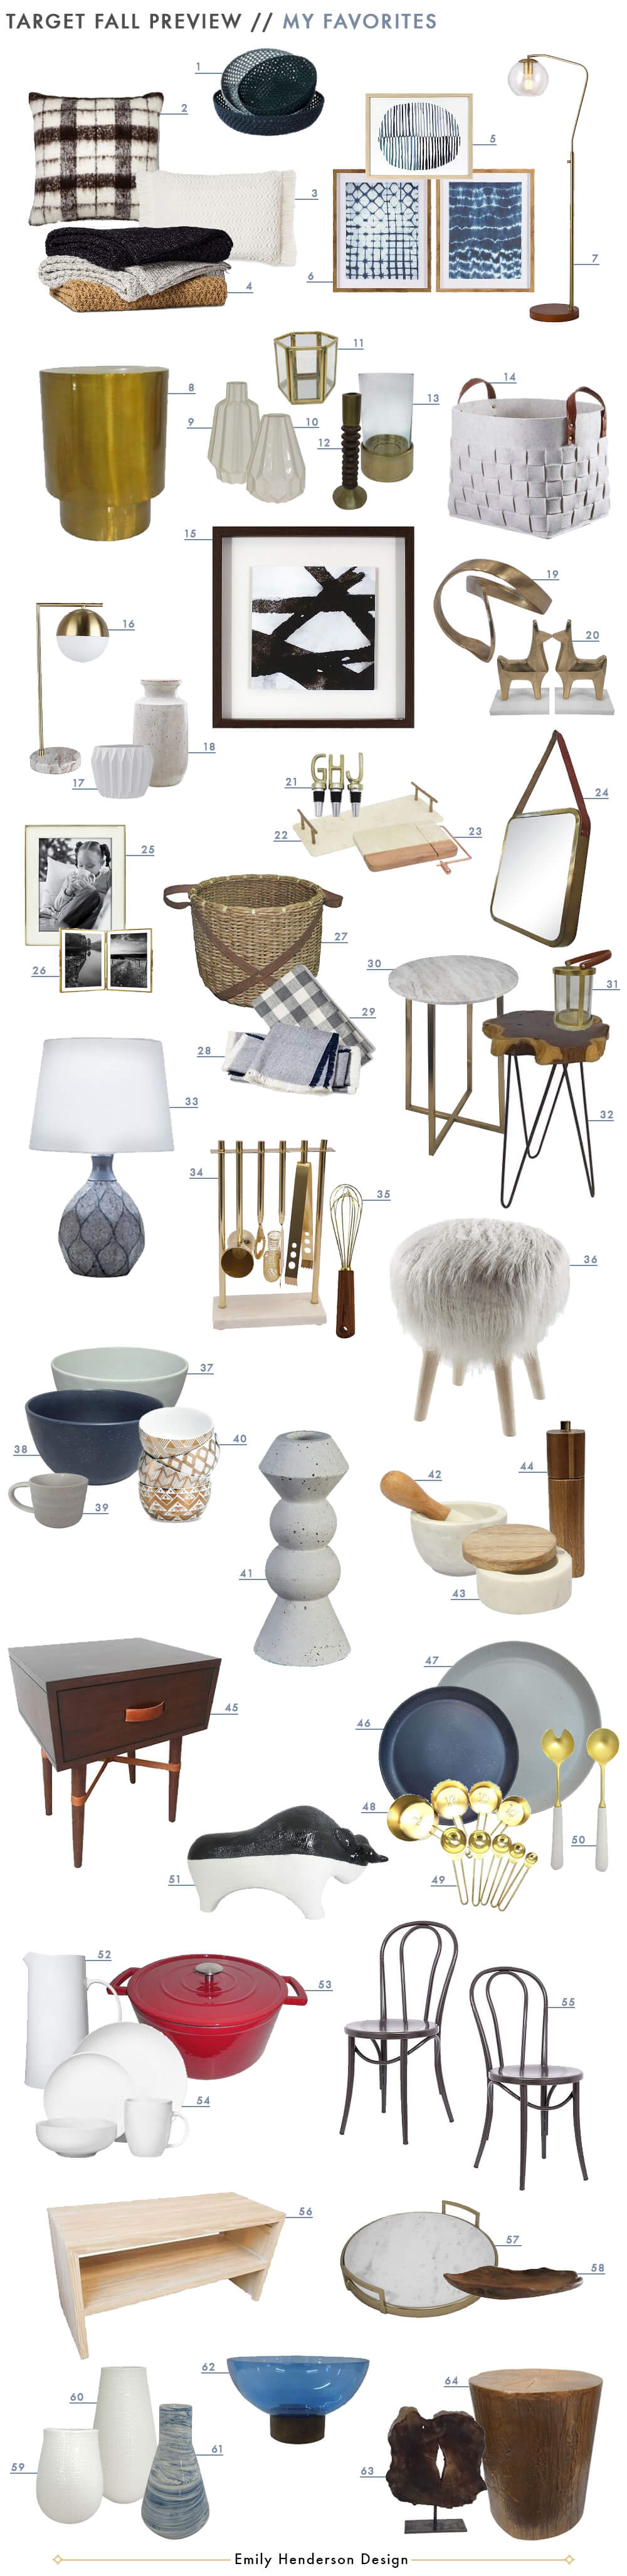 the new target fall style collection emily henderson preview emilys favorites get look threshold nate berkus home decor accent table patio conversation sets tiny corner ceramic